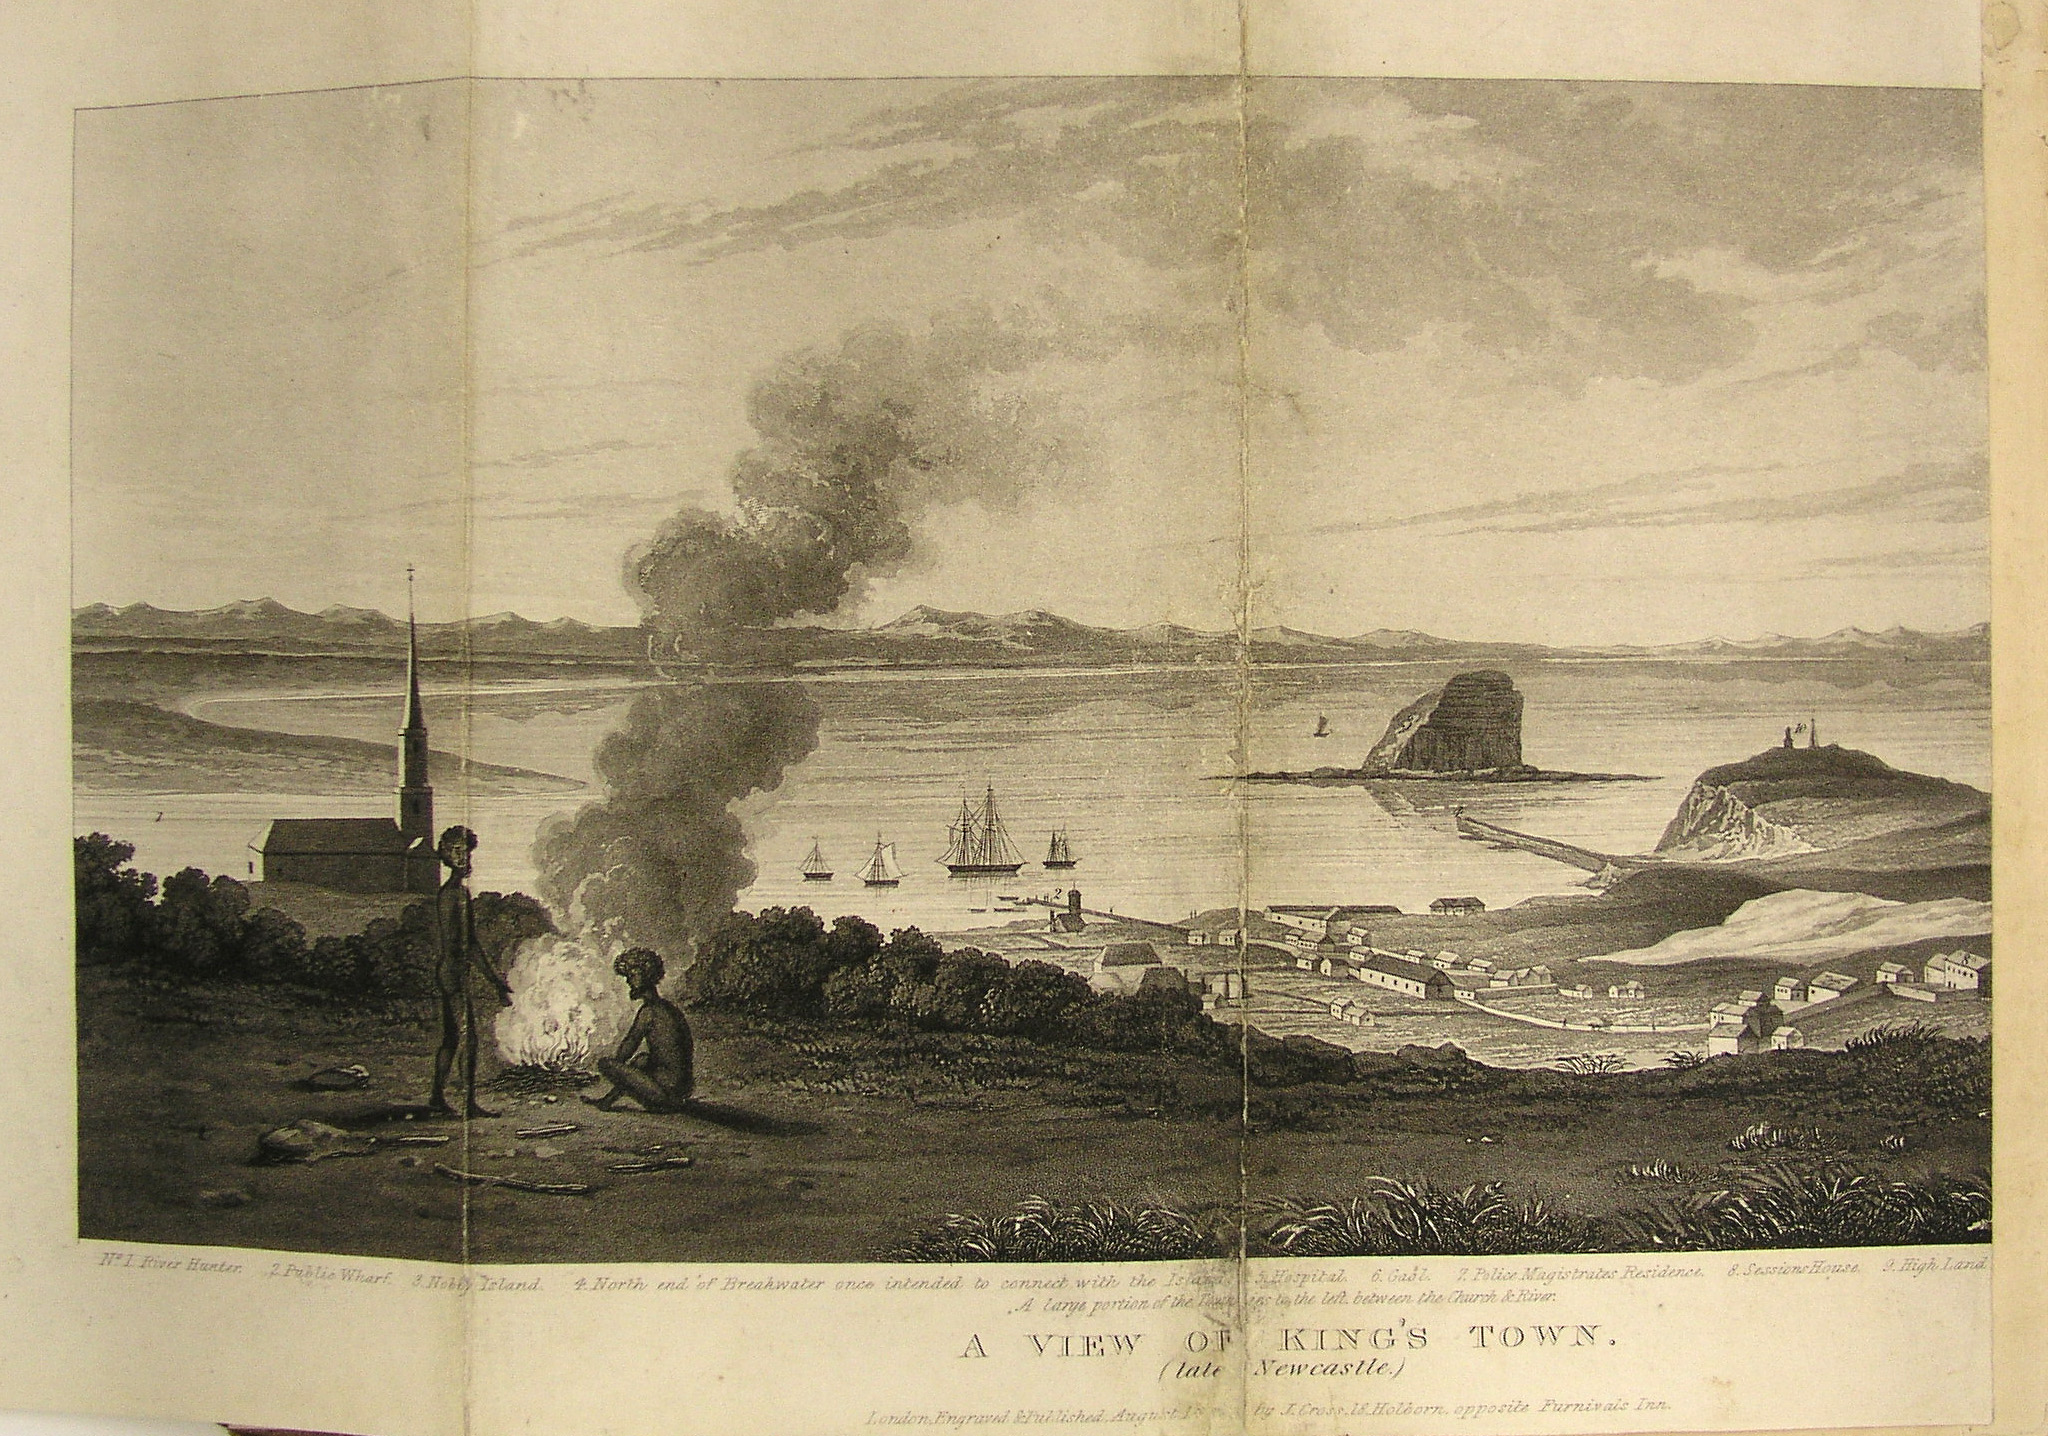 Cross, Joseph. A View of King's Town (Late Newcastle) 1828. Published in Henry Dangar's Index. (University of Newcastle Rare Book Collection)